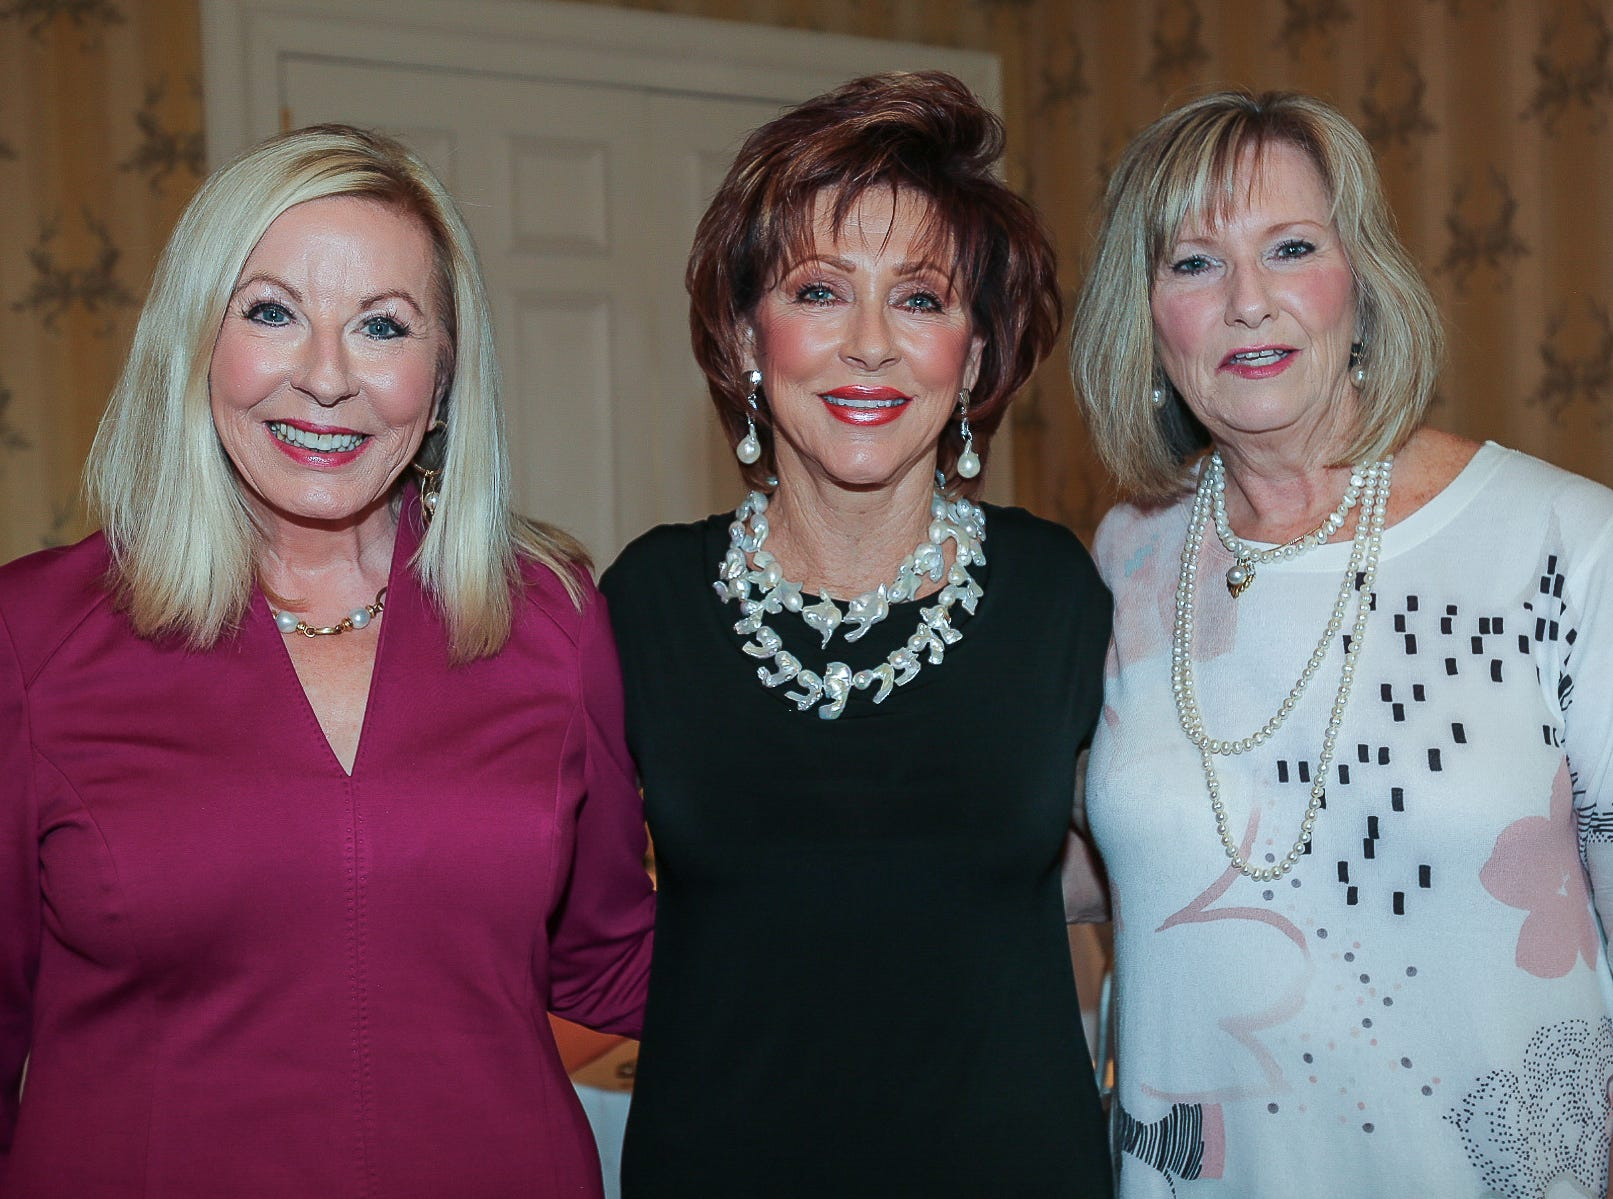 Beth Raidel, Becky Cameron, and Sherry Nemmers